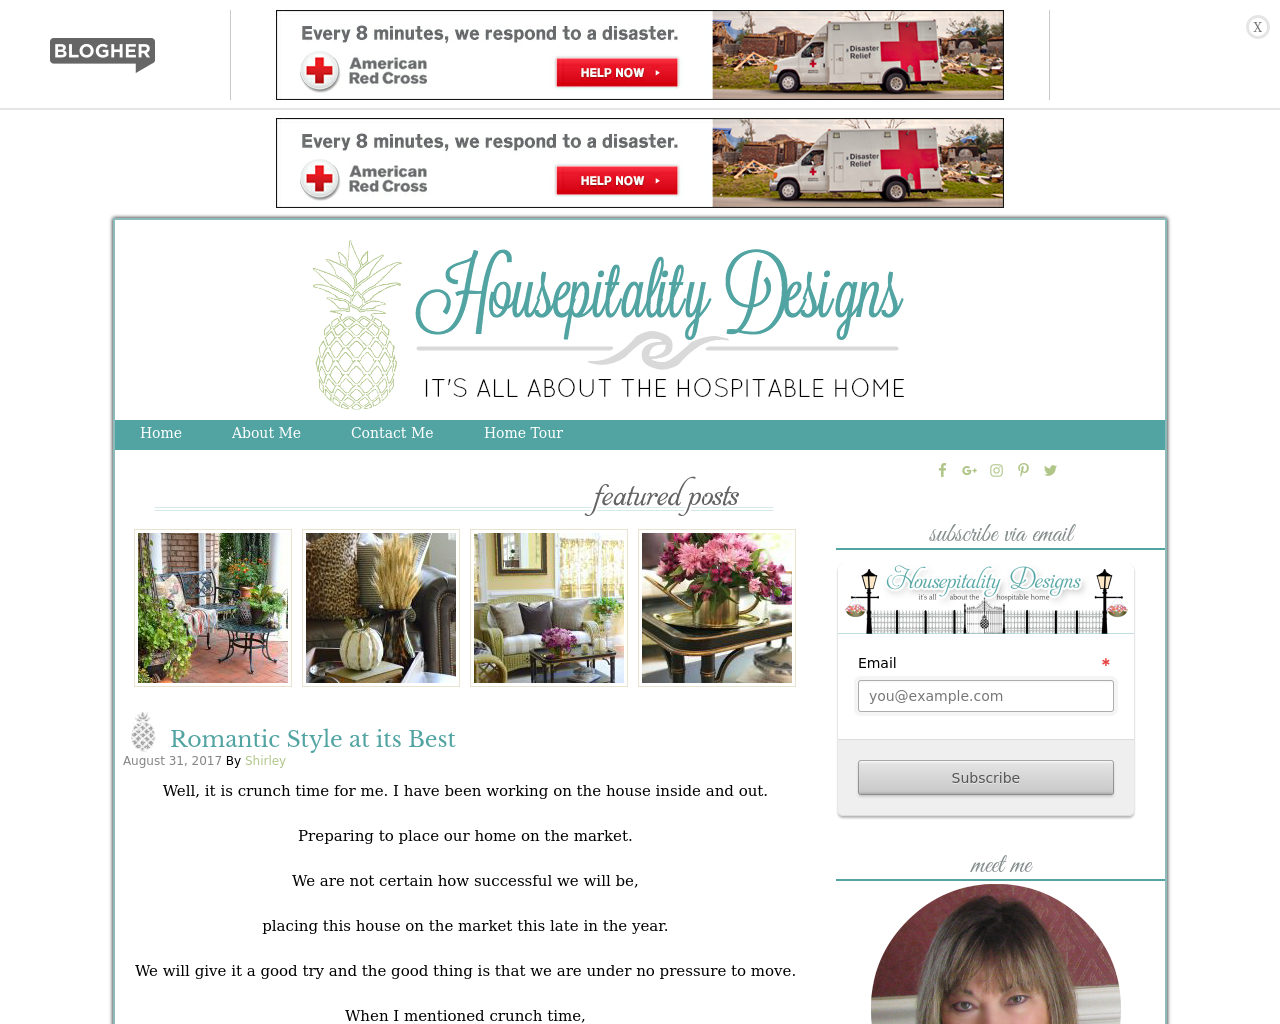 Housepitality-Designs-Advertising-Reviews-Pricing